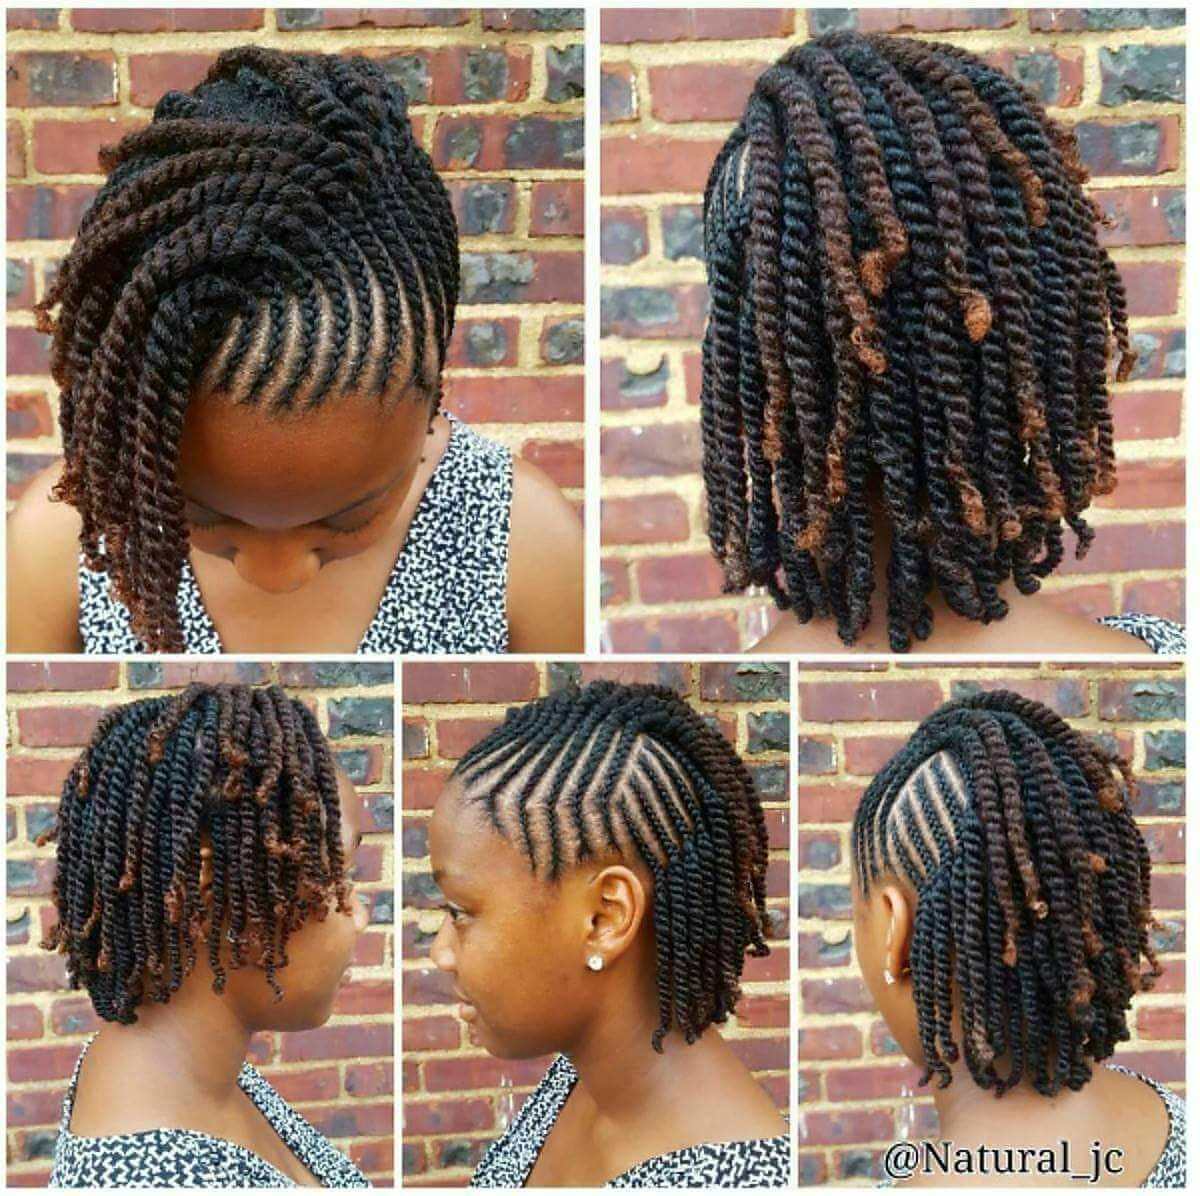 Braids With Twists Braids For Short Hair Hair Twist Styles Natural Hair Styles